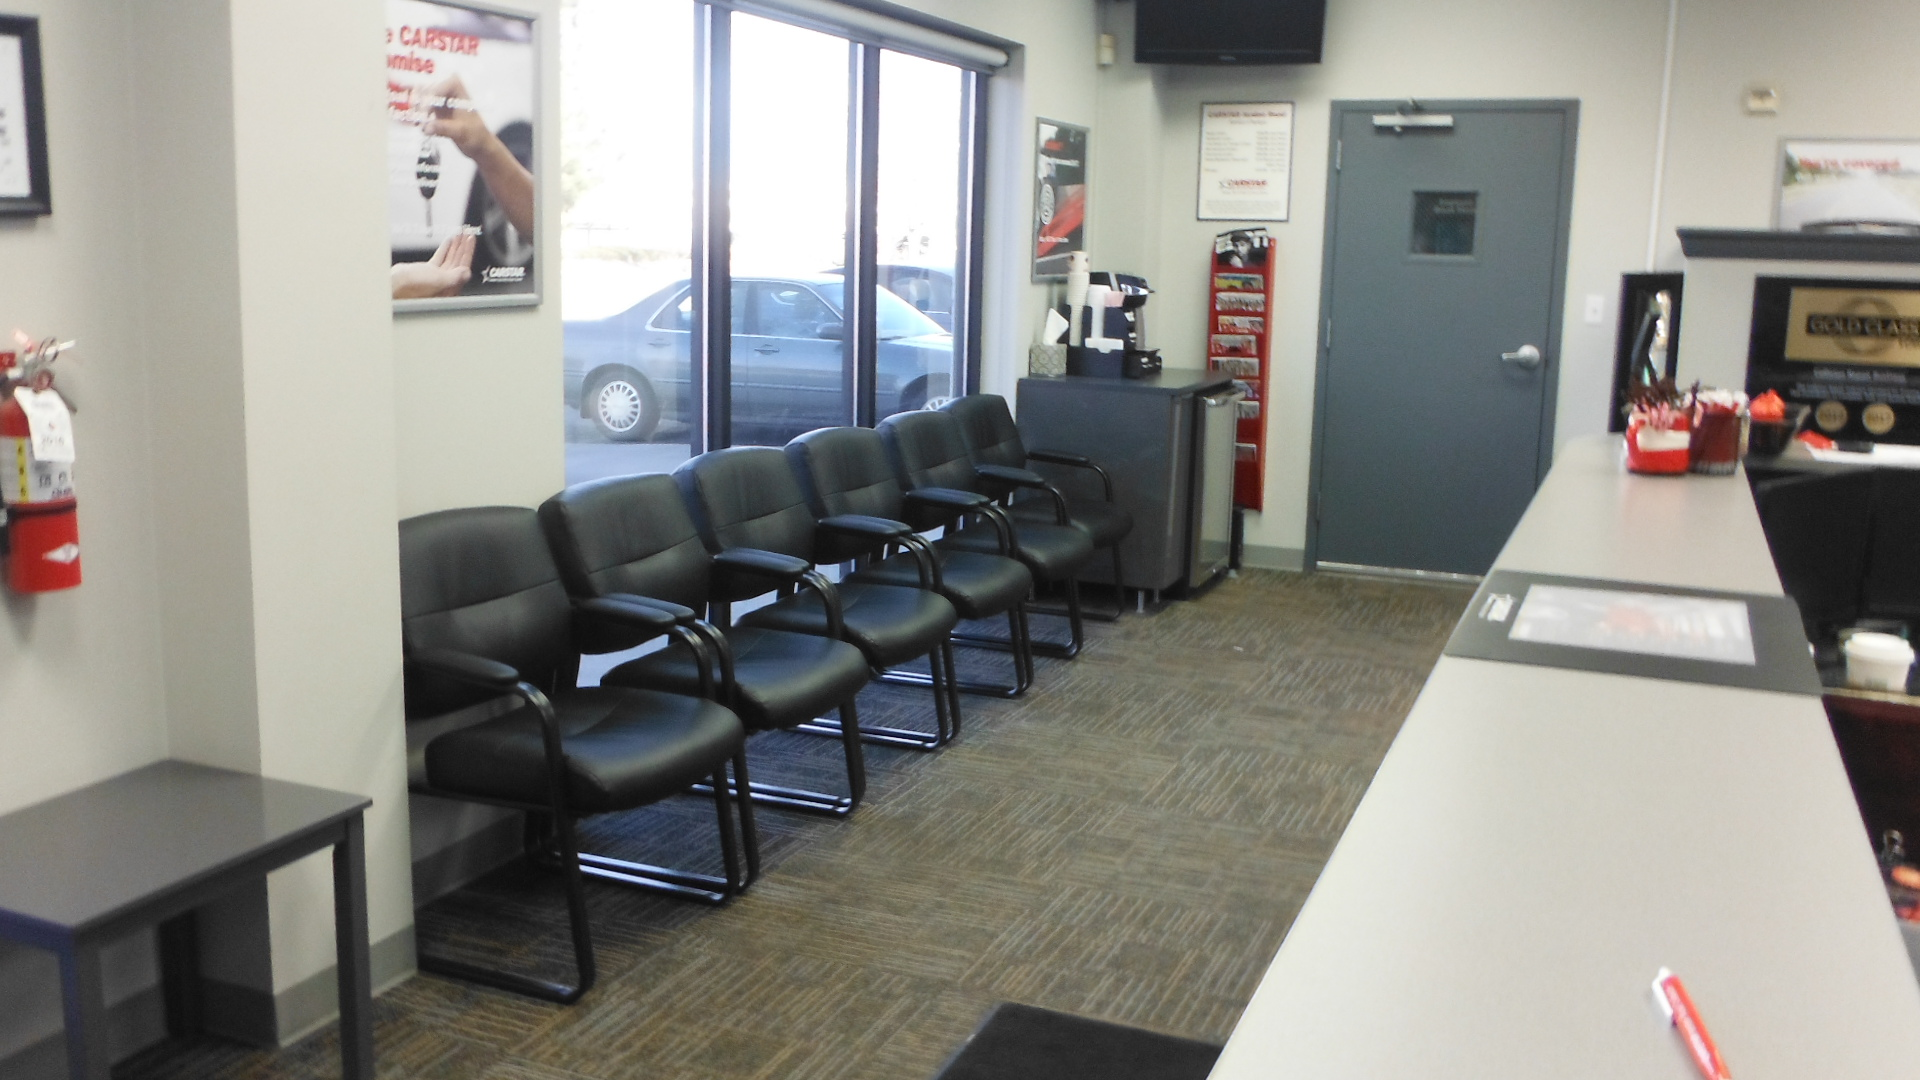 Jordan Road CARSTAR Collision: Customer Waiting Area